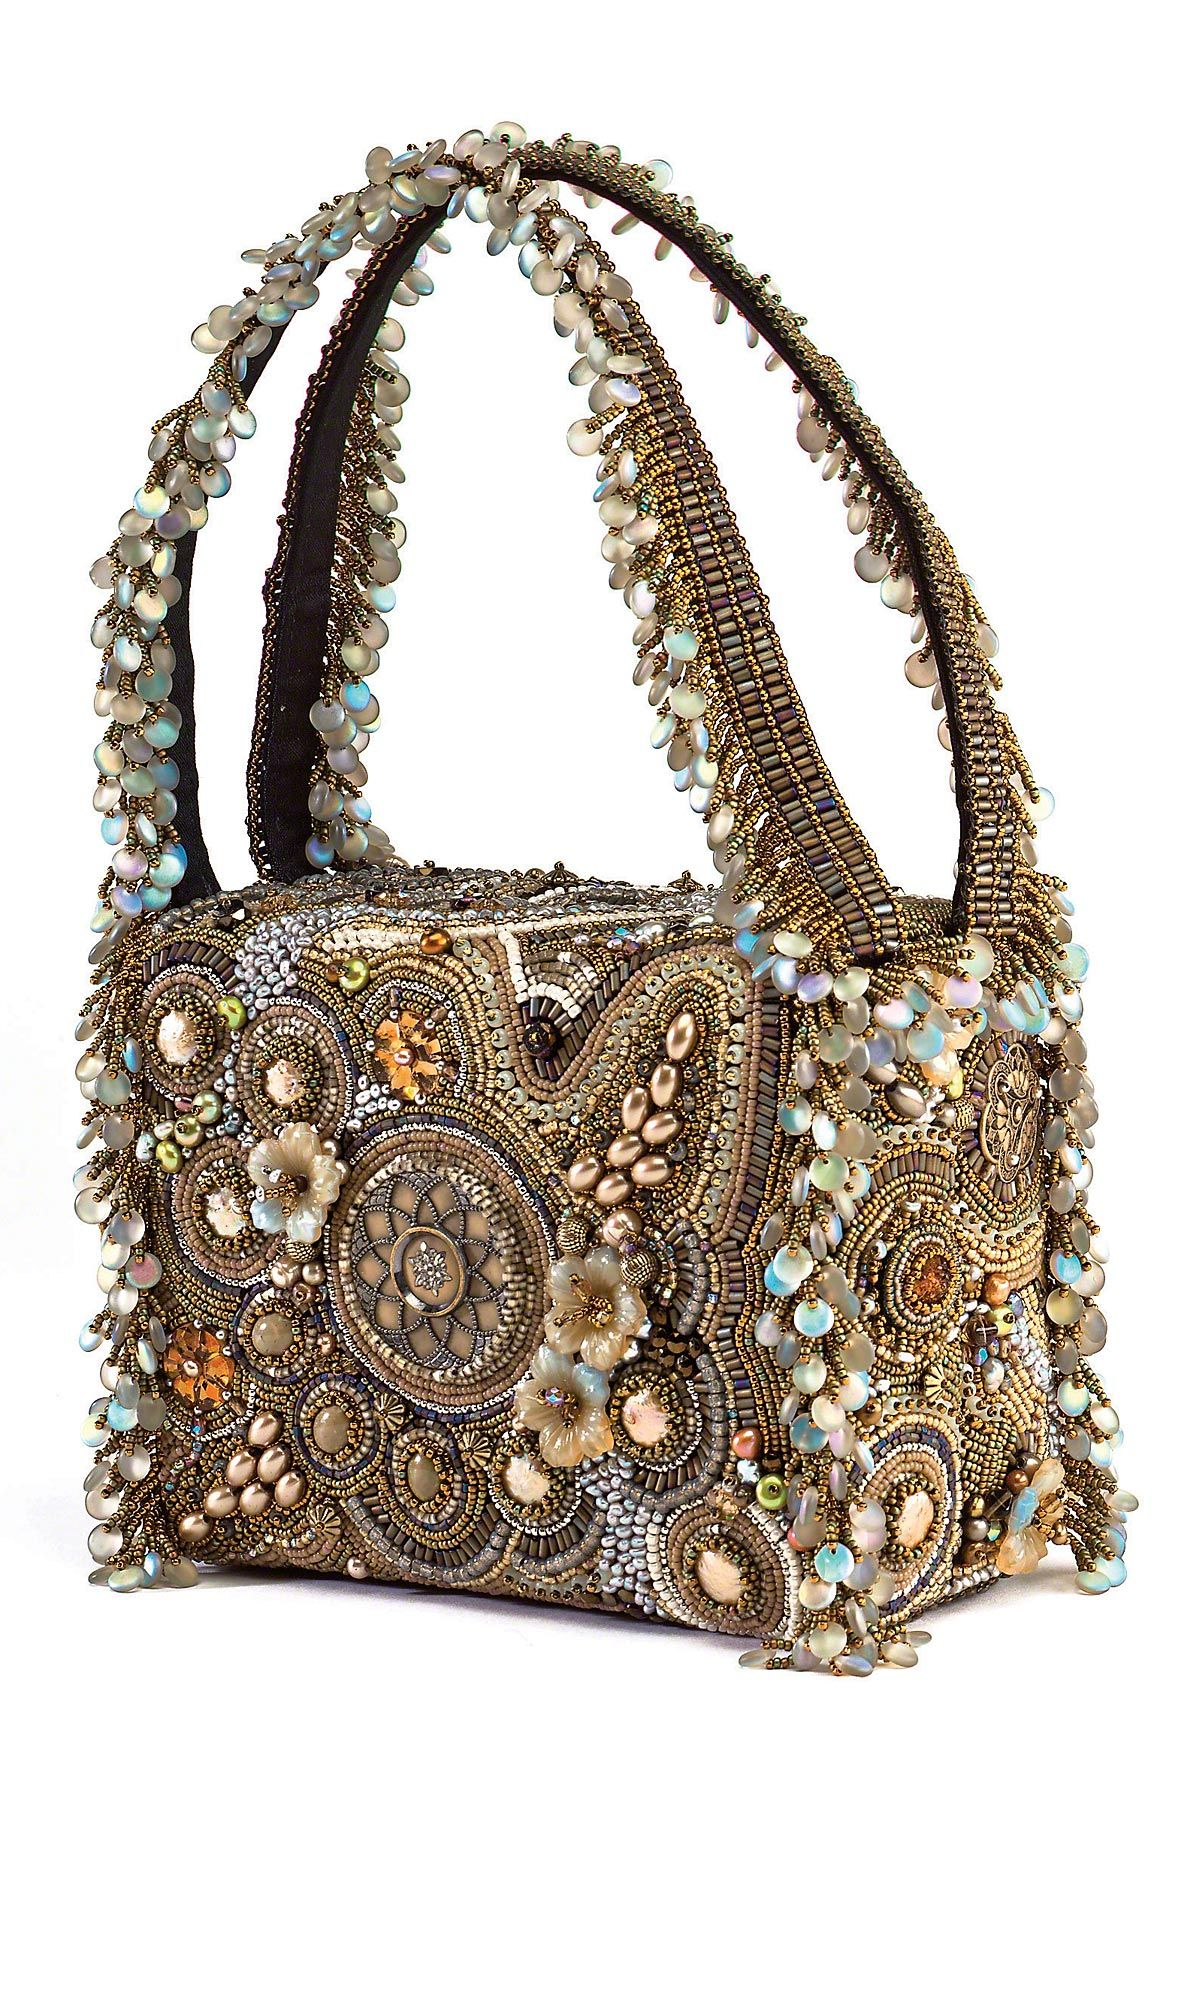 Jewelry Design - Purse with Seed Beads, Pearls and Gemstone ...